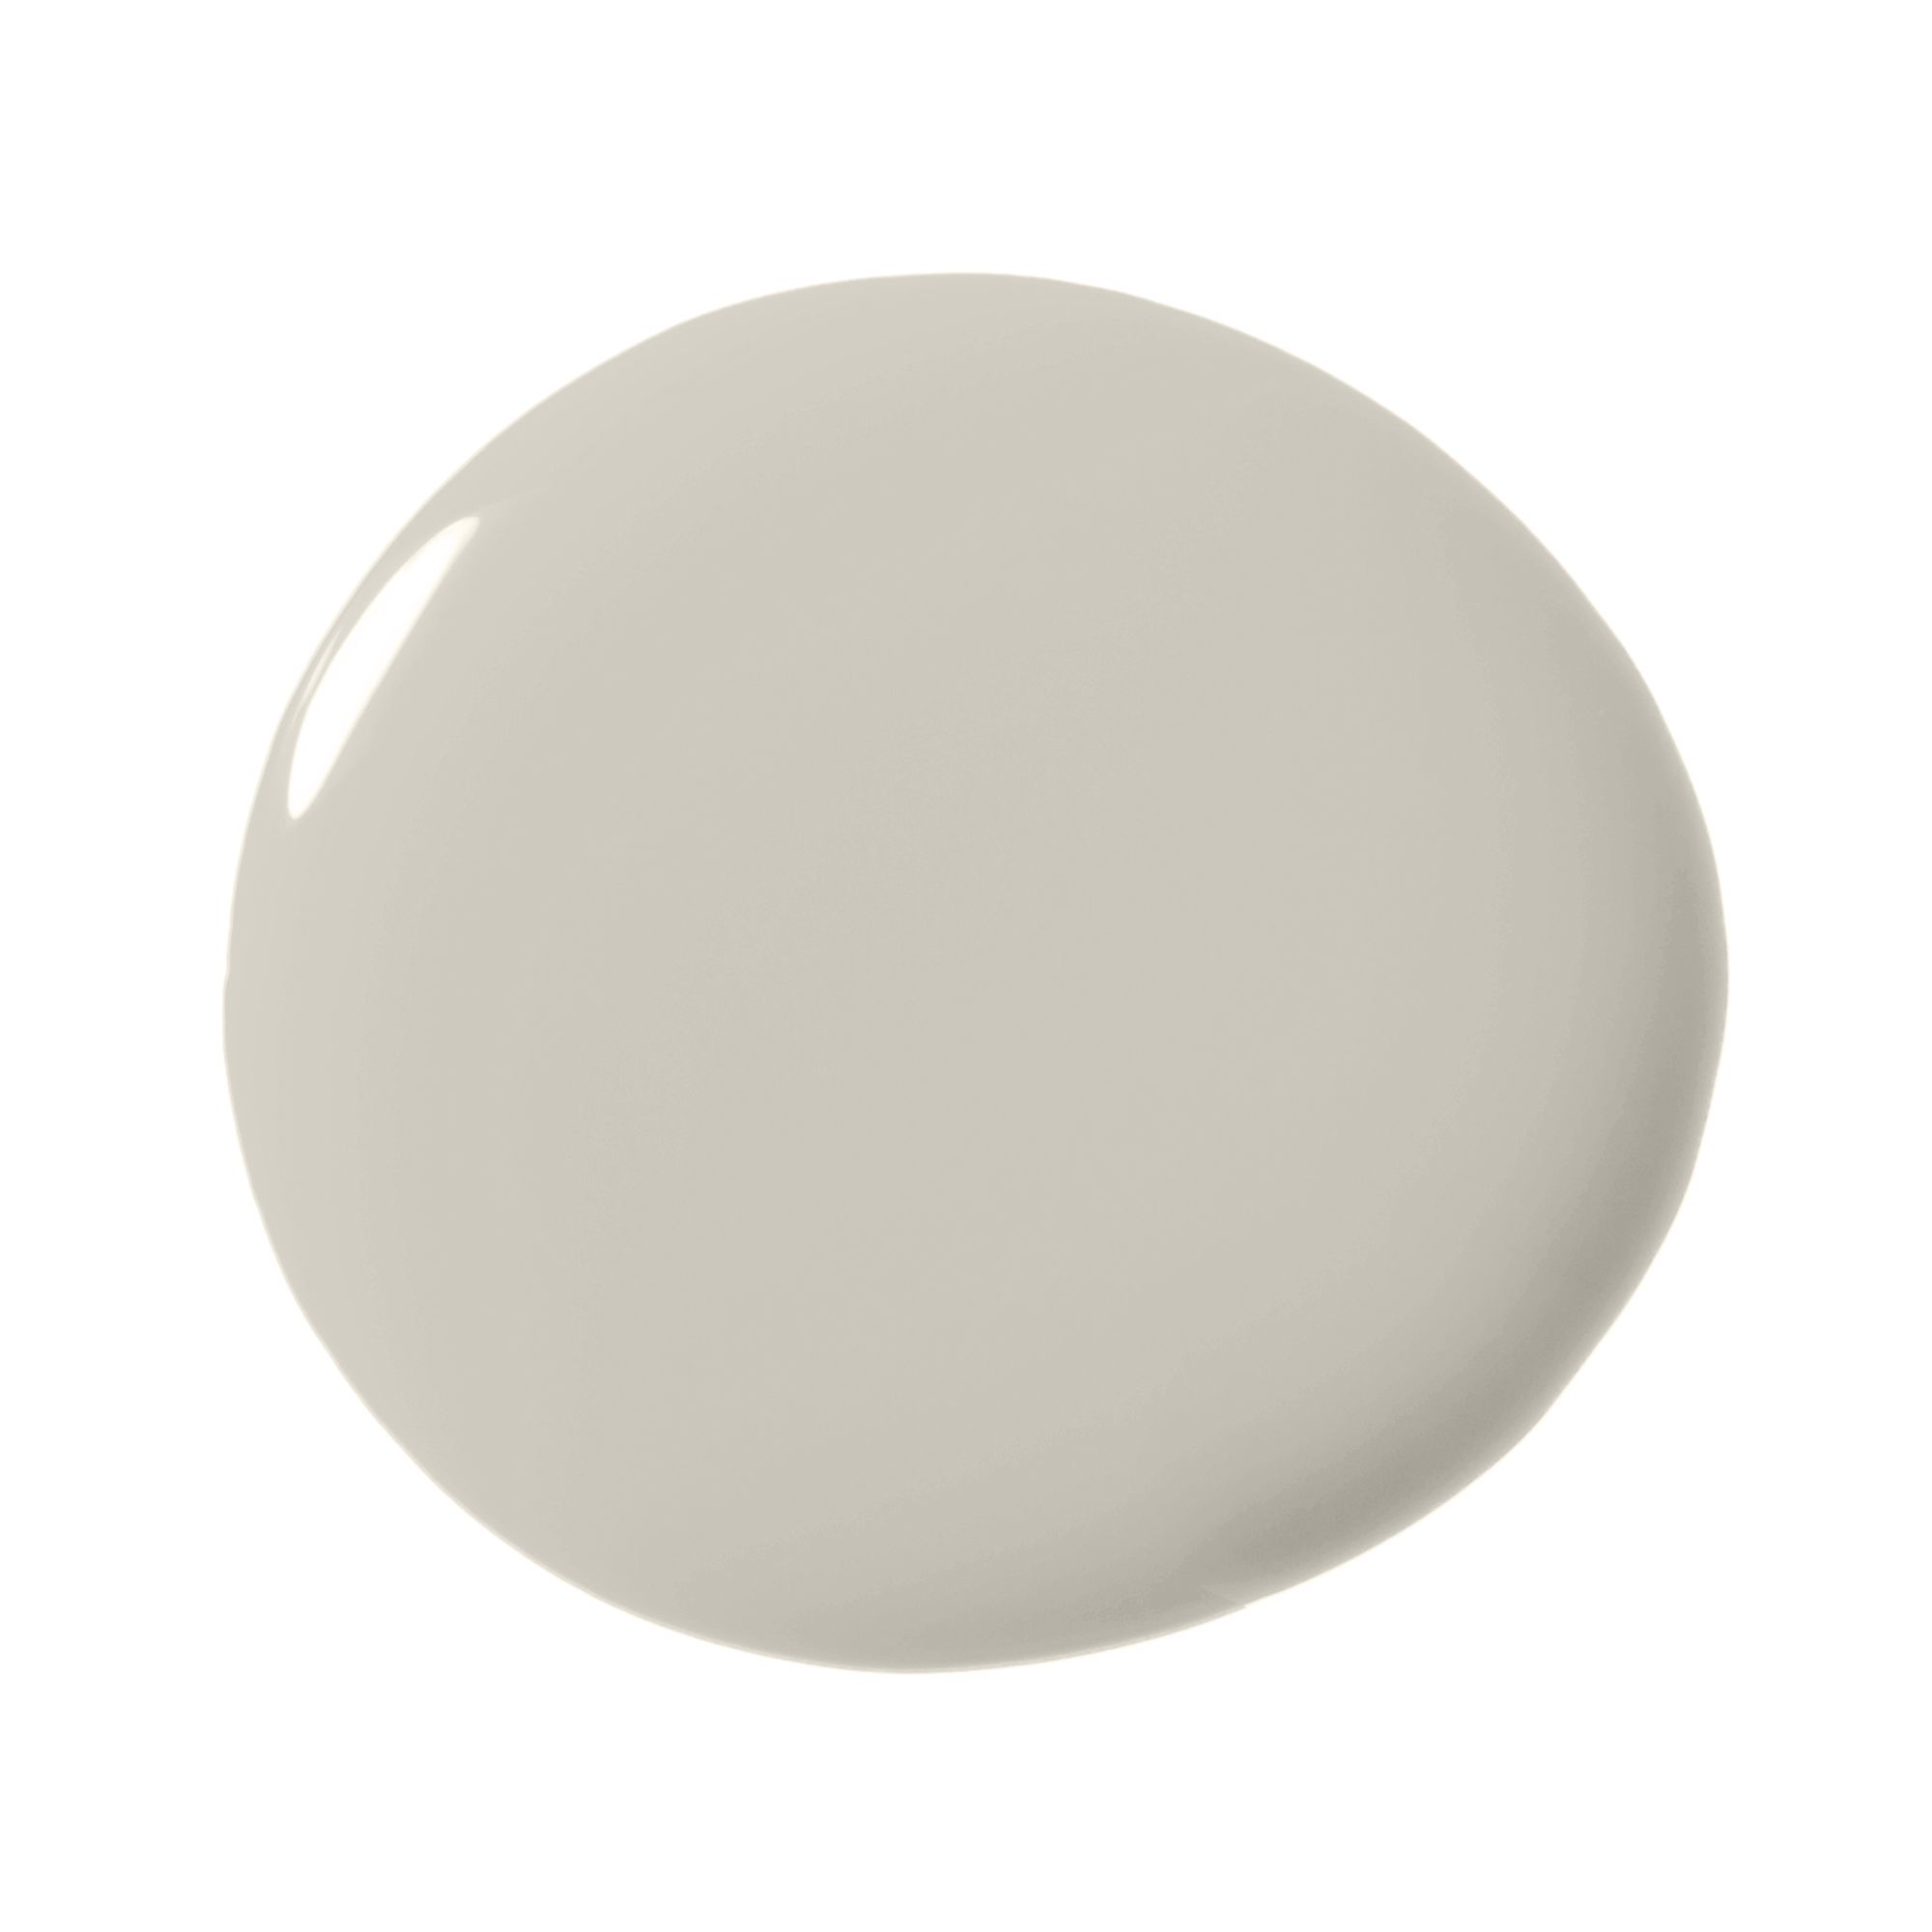 Designers Say These Are The Best Kitchen Paint Colors Kitchen Paint Favorite Paint Colors Kitchen Paint Colors